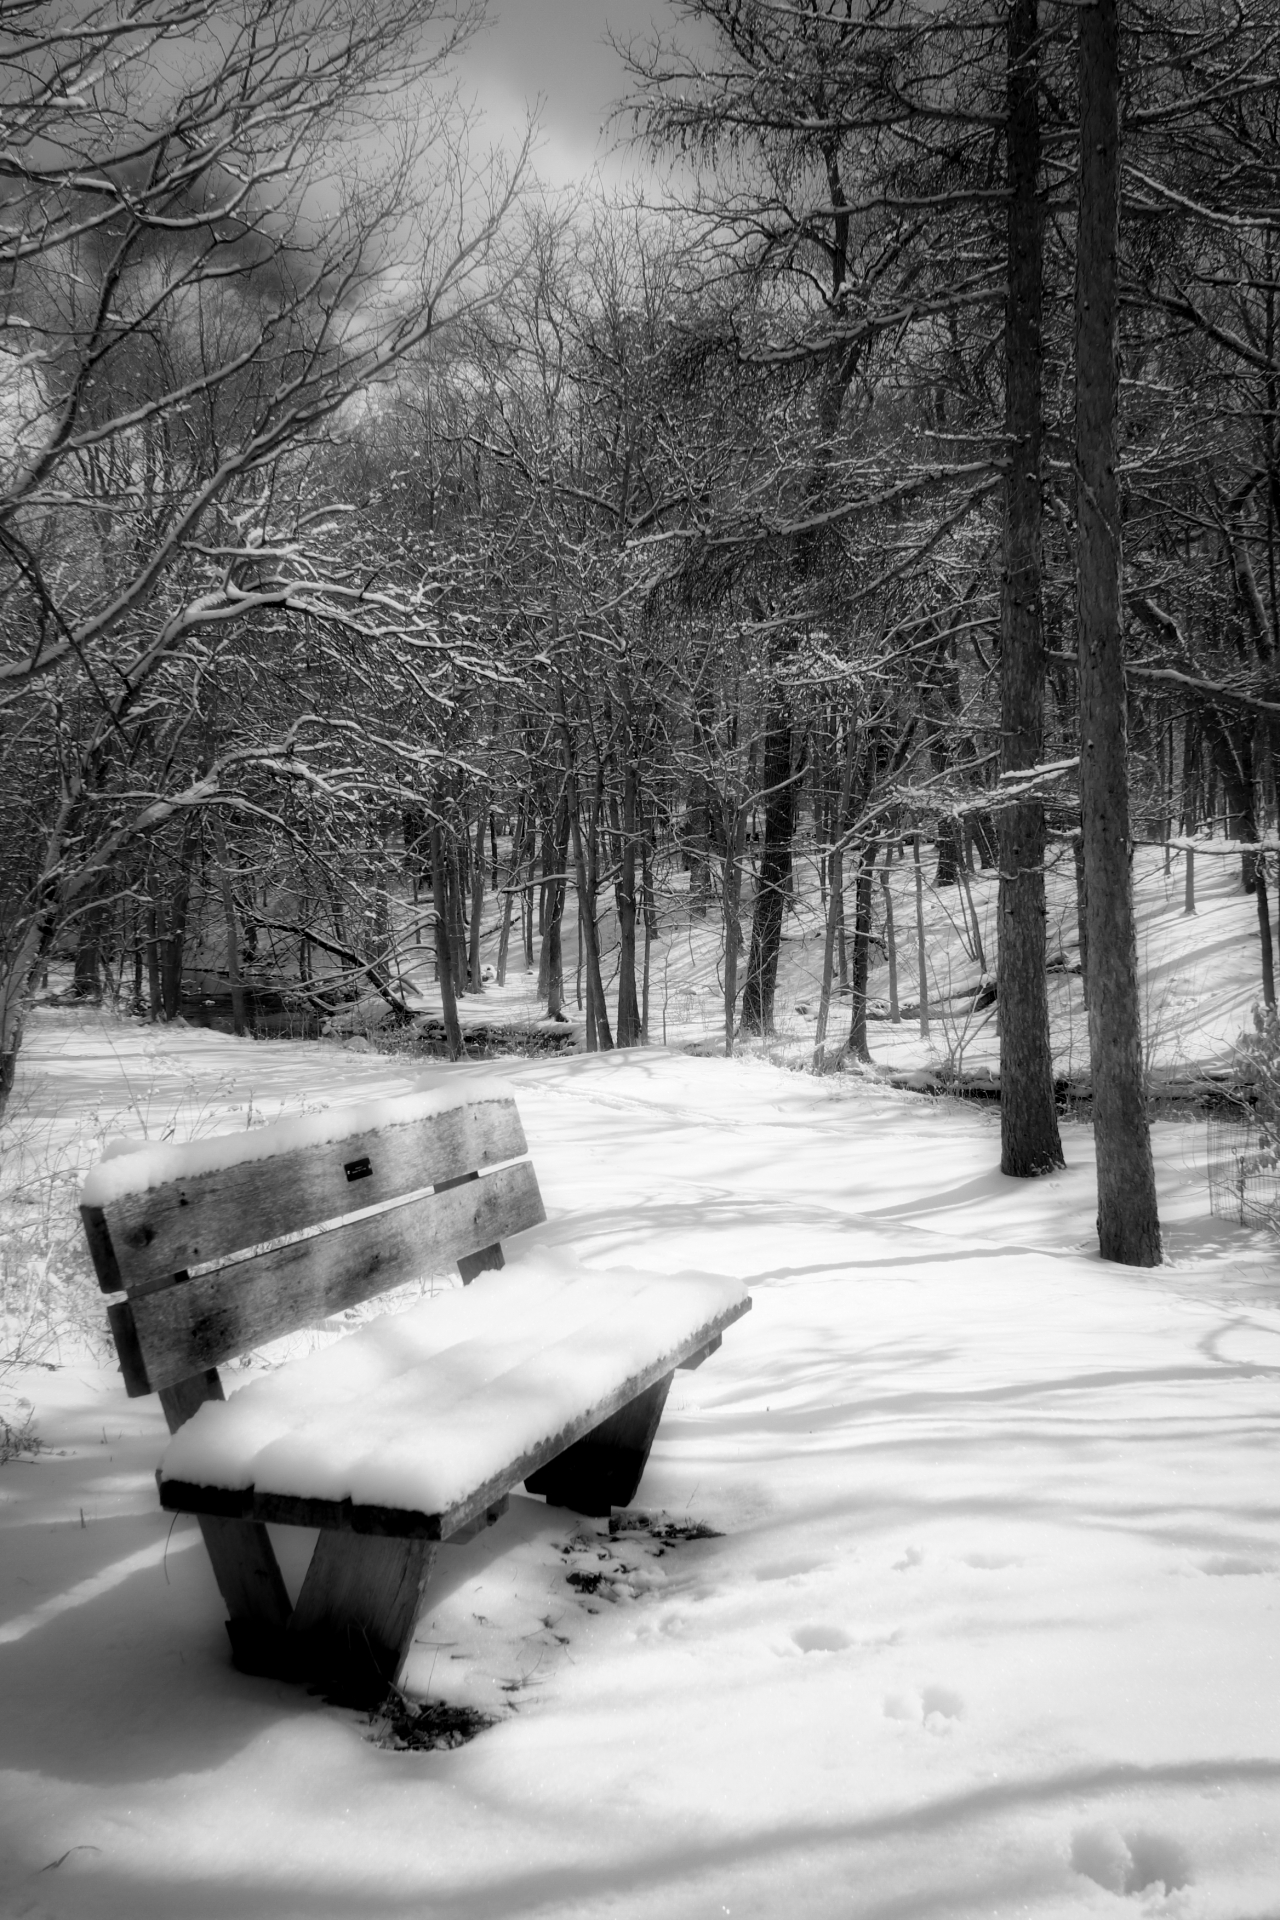 A Bench With aView